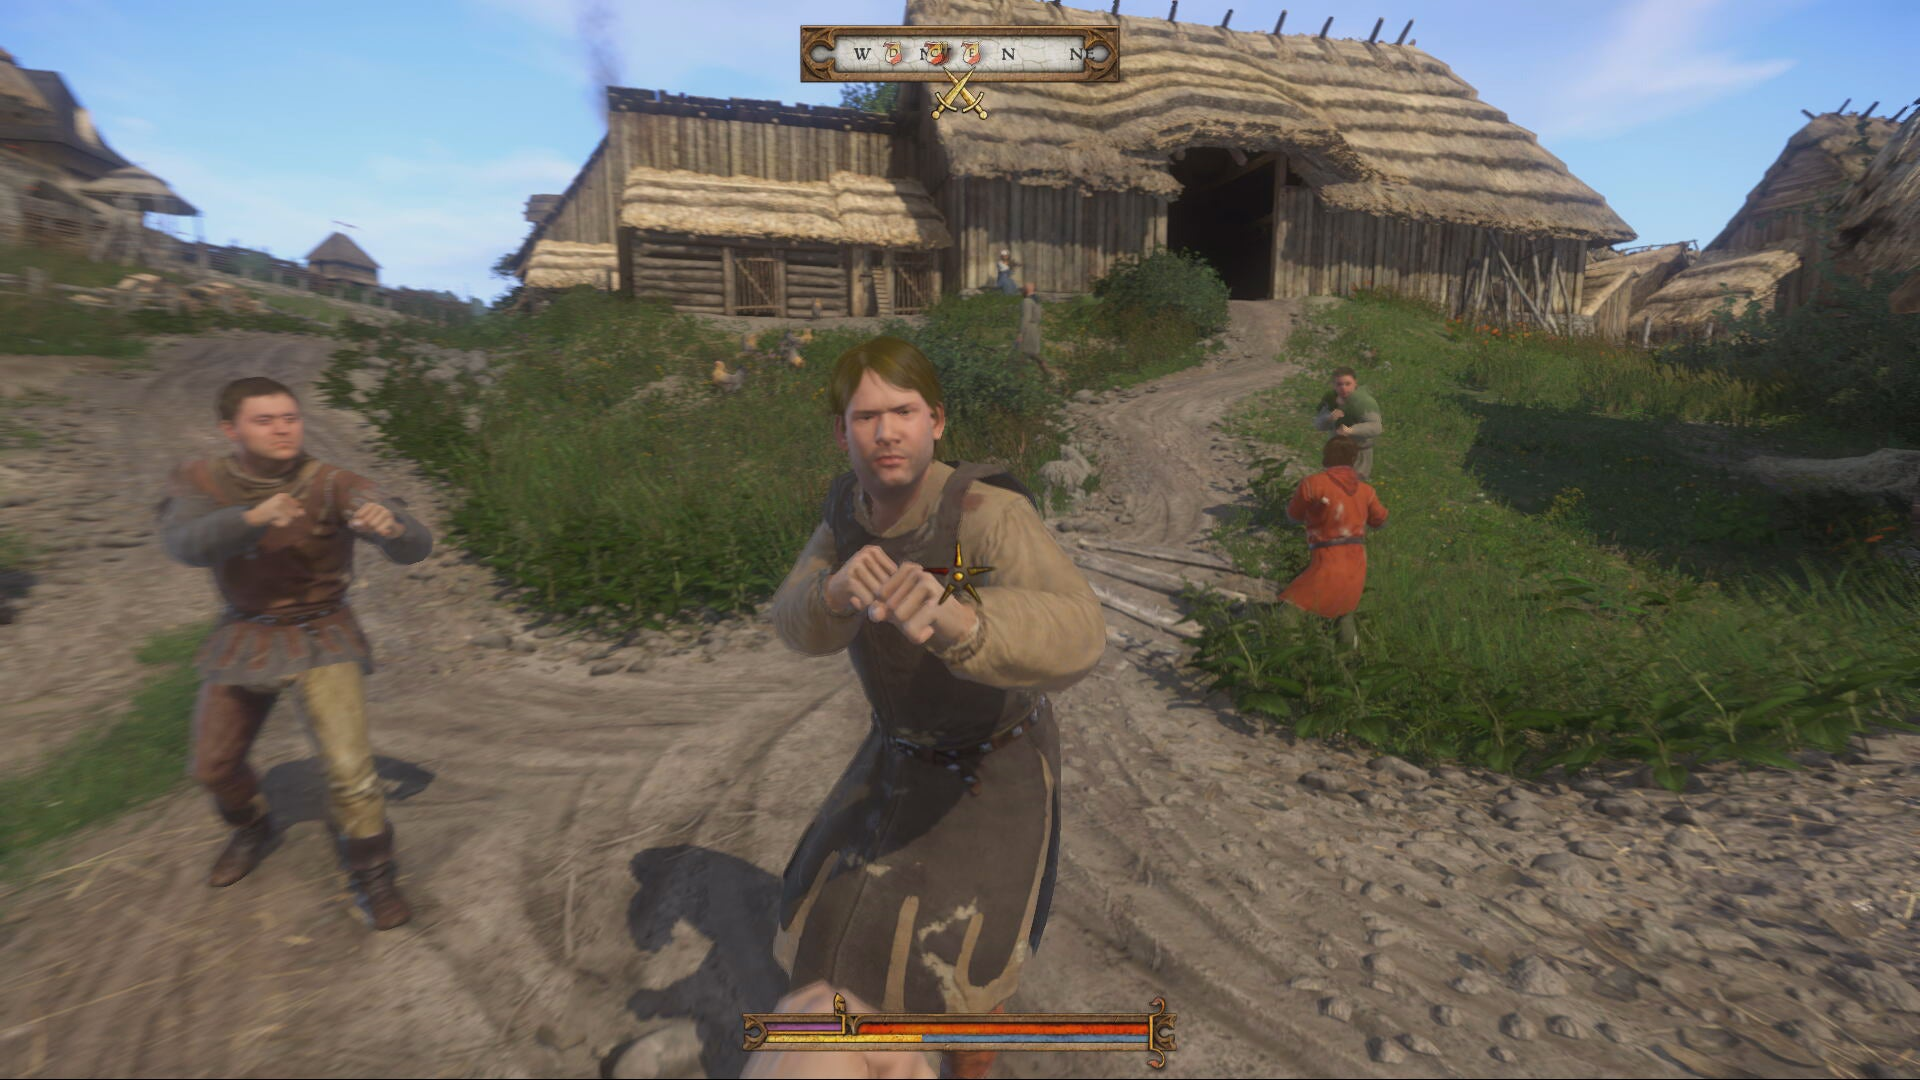 Kingdom Come: Deliverance's awkward save system has already been